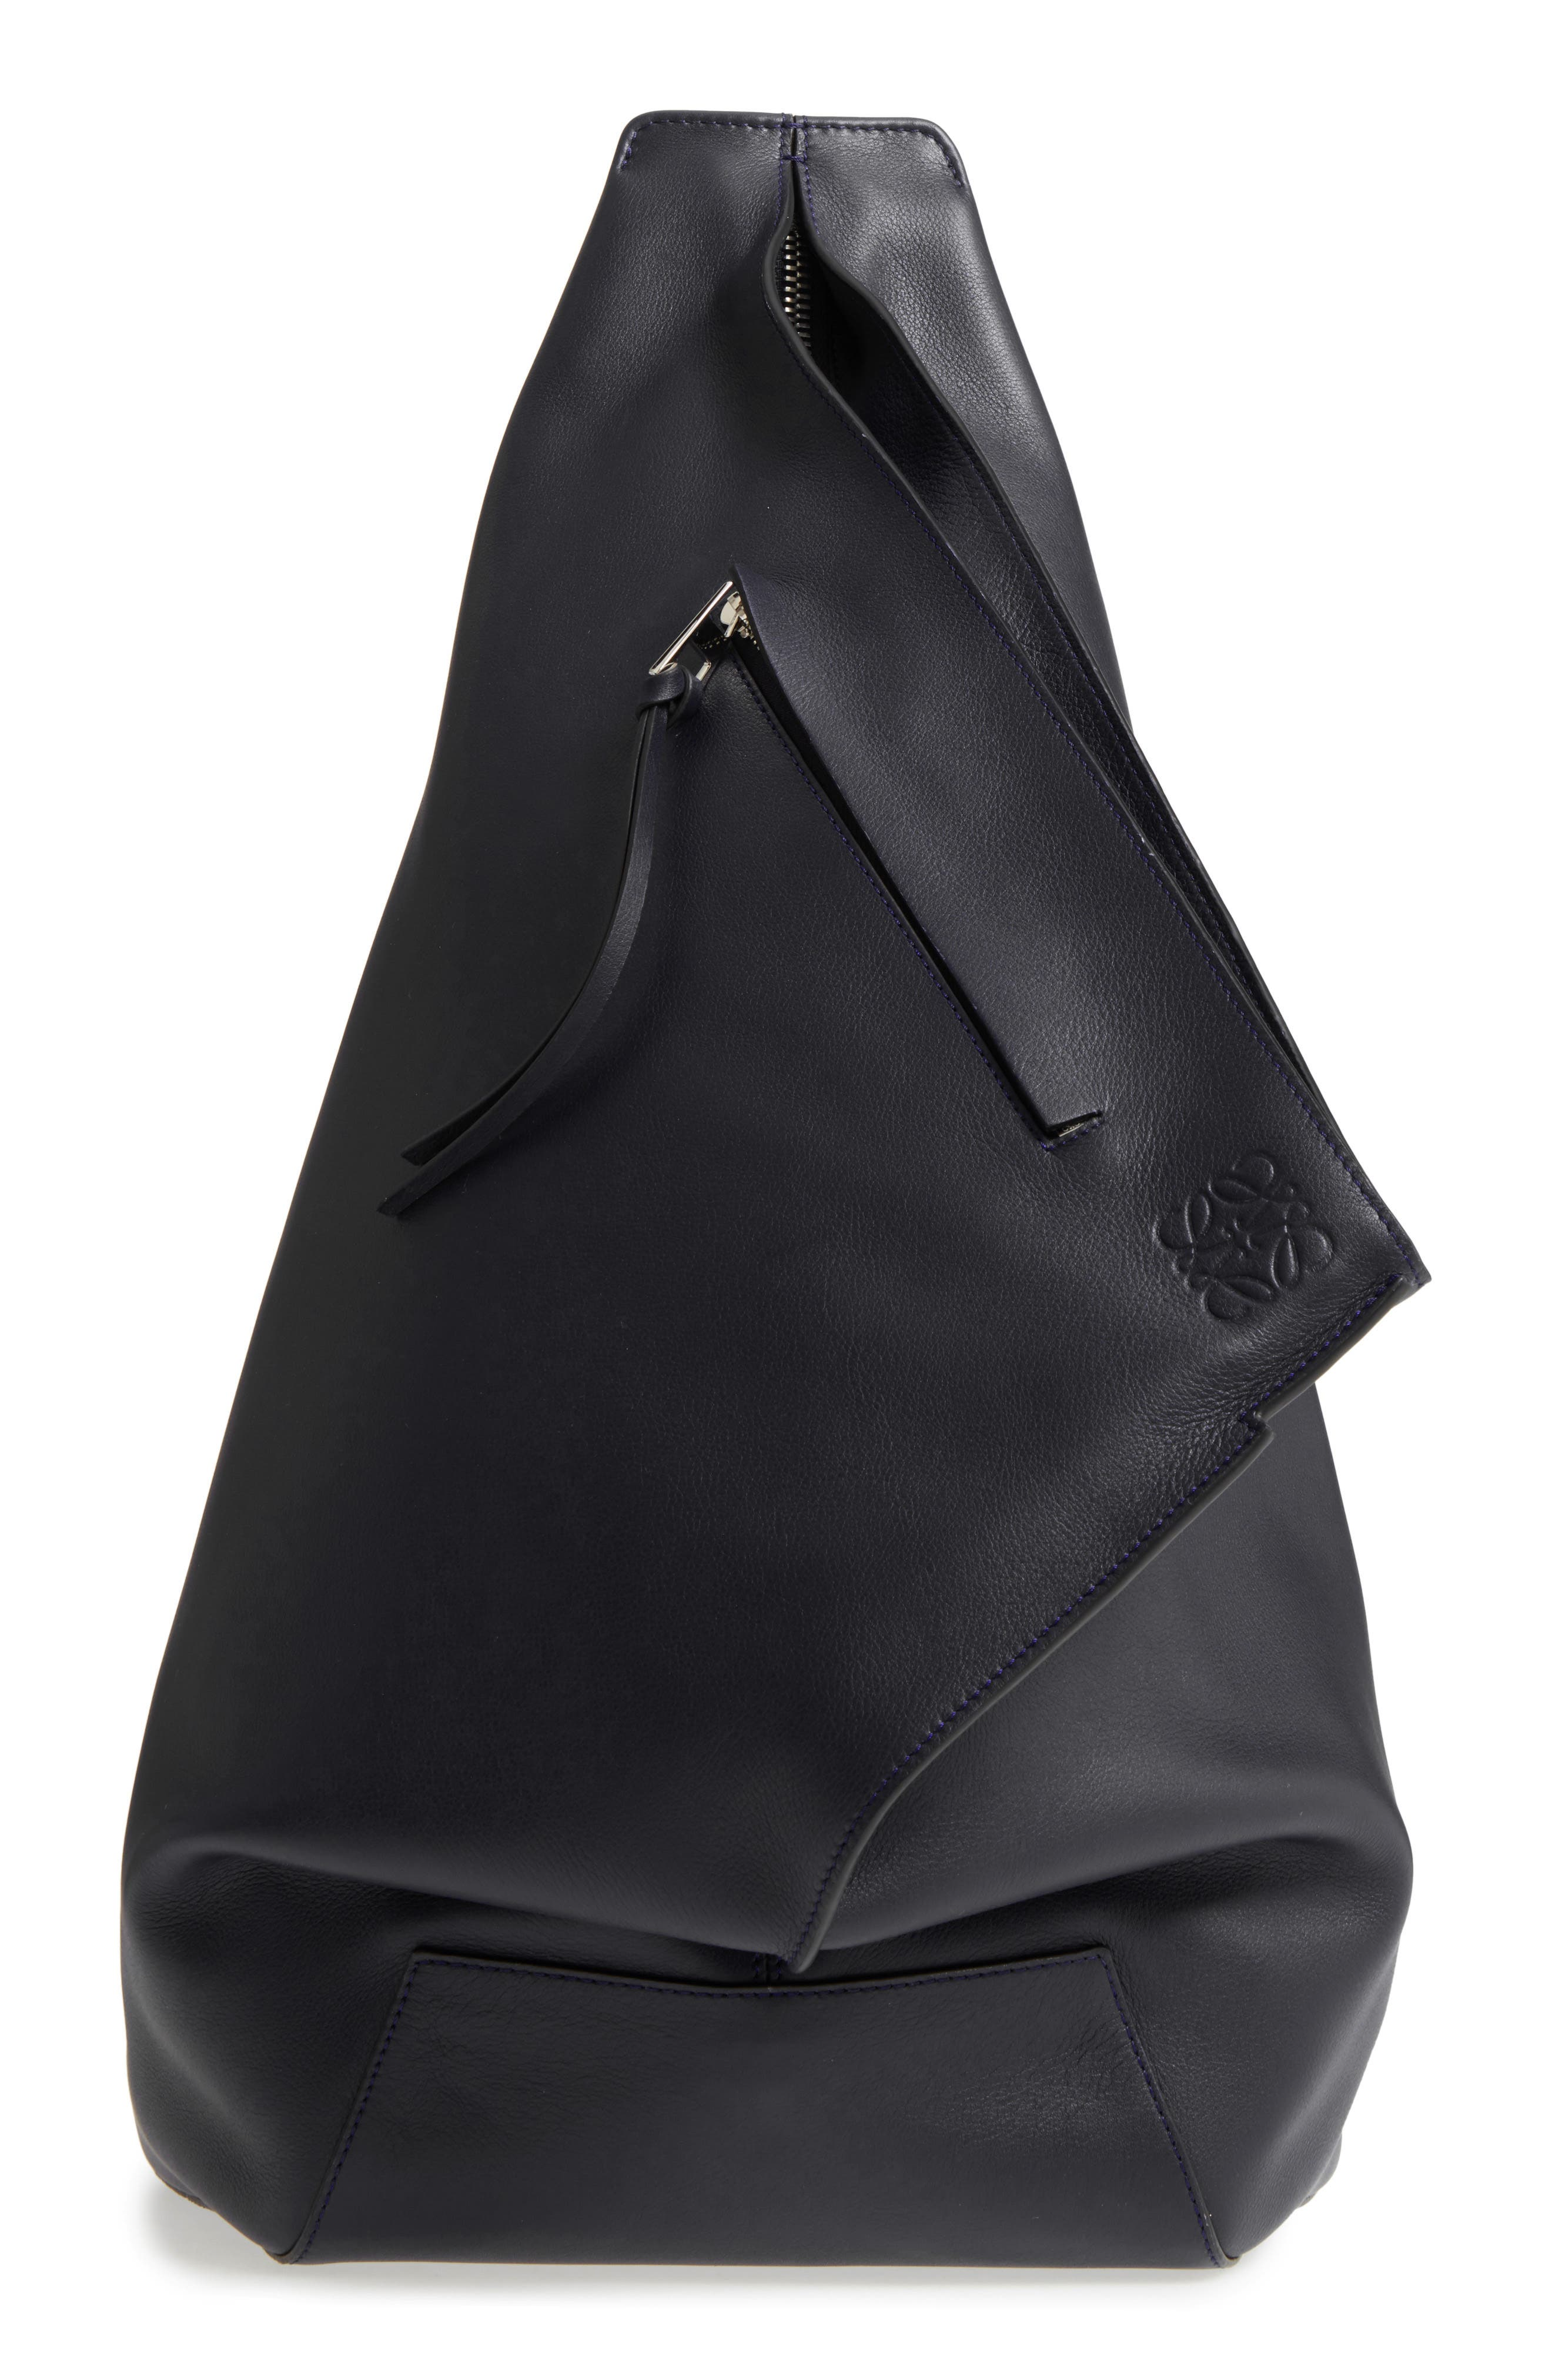 Anton Leather Sling Pack,                         Main,                         color, 001